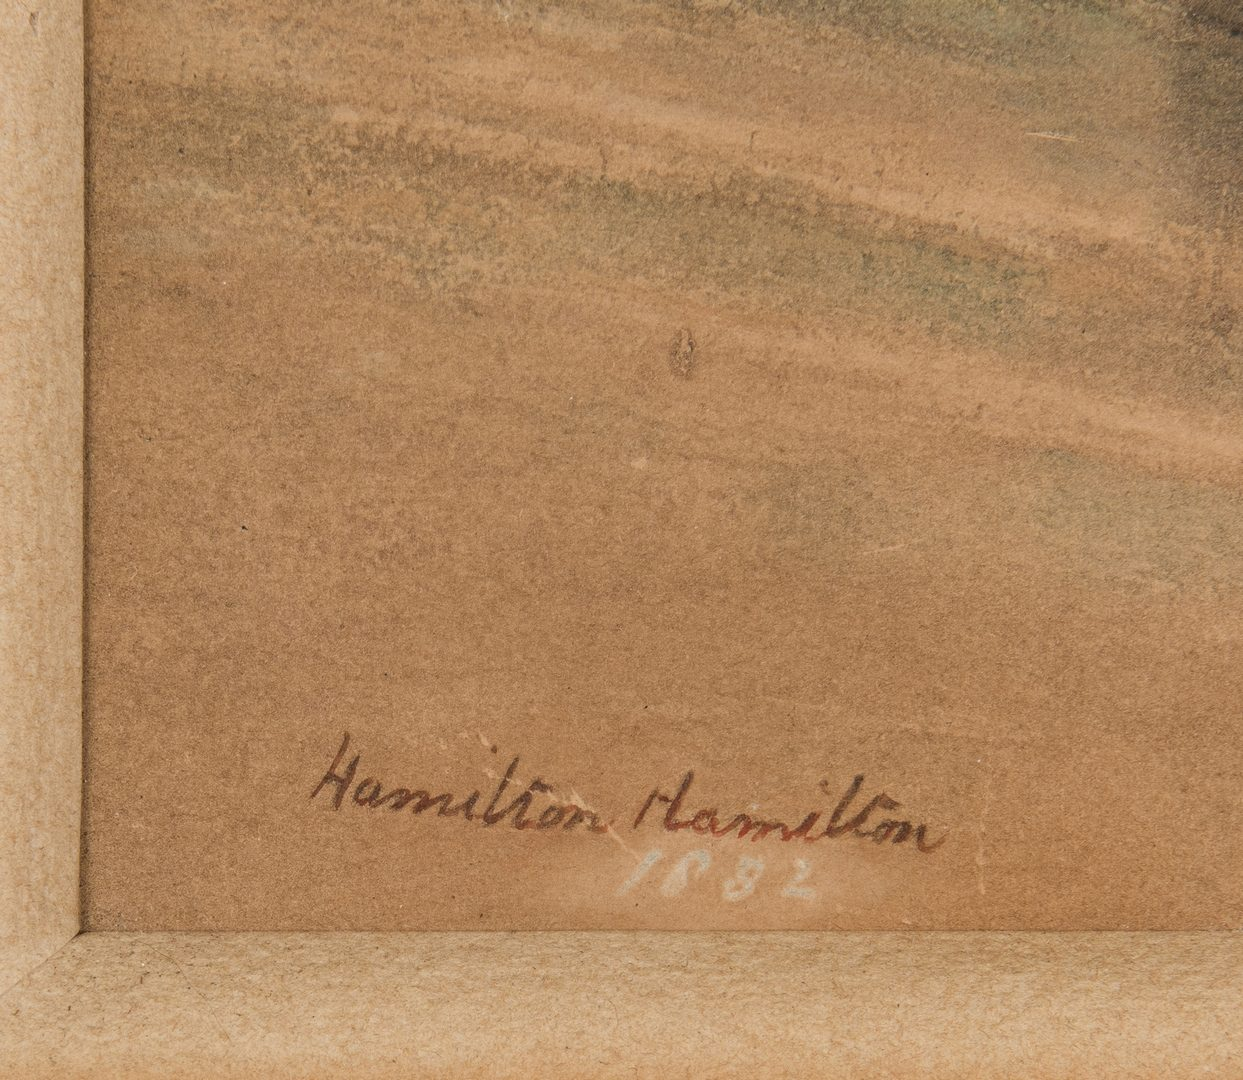 Lot 374: Hamilton Hamilton Chromolithographic Print, Bathing Beauty on Beach